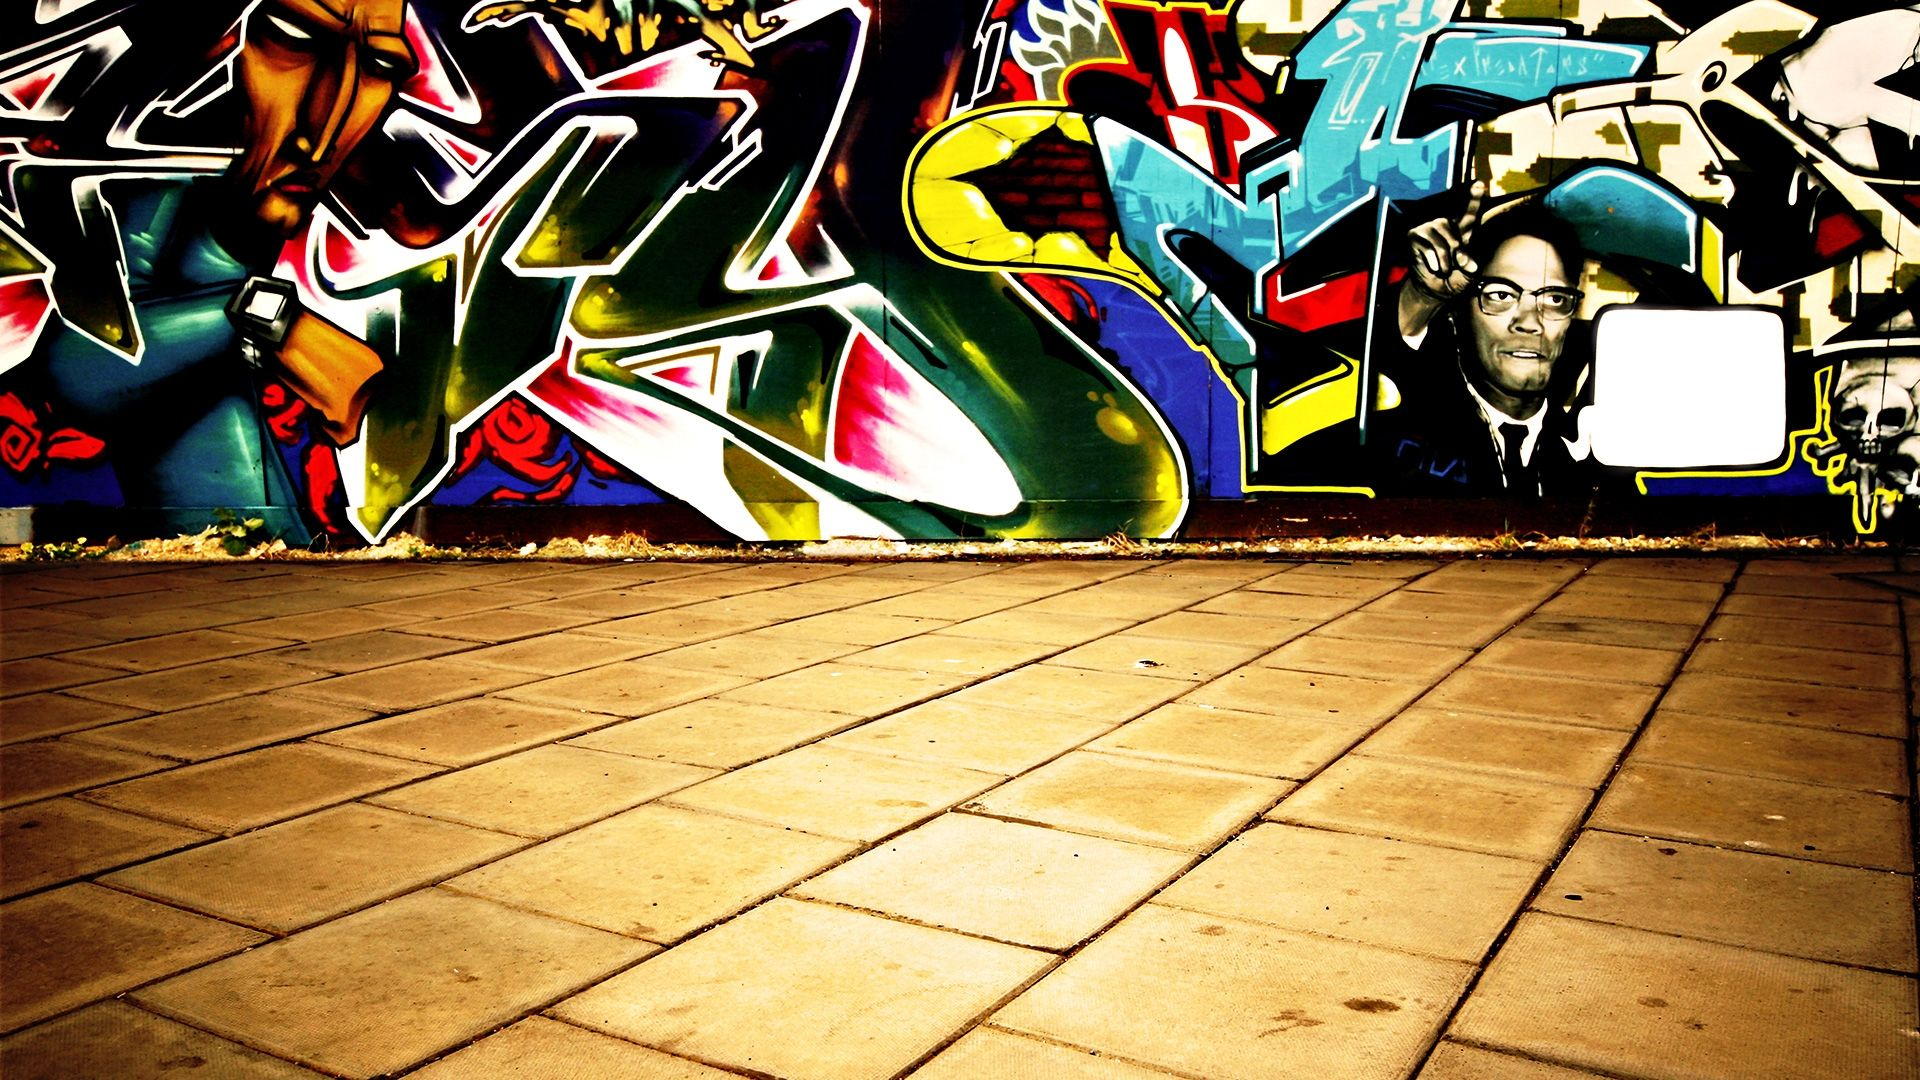 Grafitti wall background - Download Free Graffiti Wallpapers For Your Mobile Phone Most Hd Wallpapers Pinterest Graffiti Wallpaper Graffiti And Wallpaper